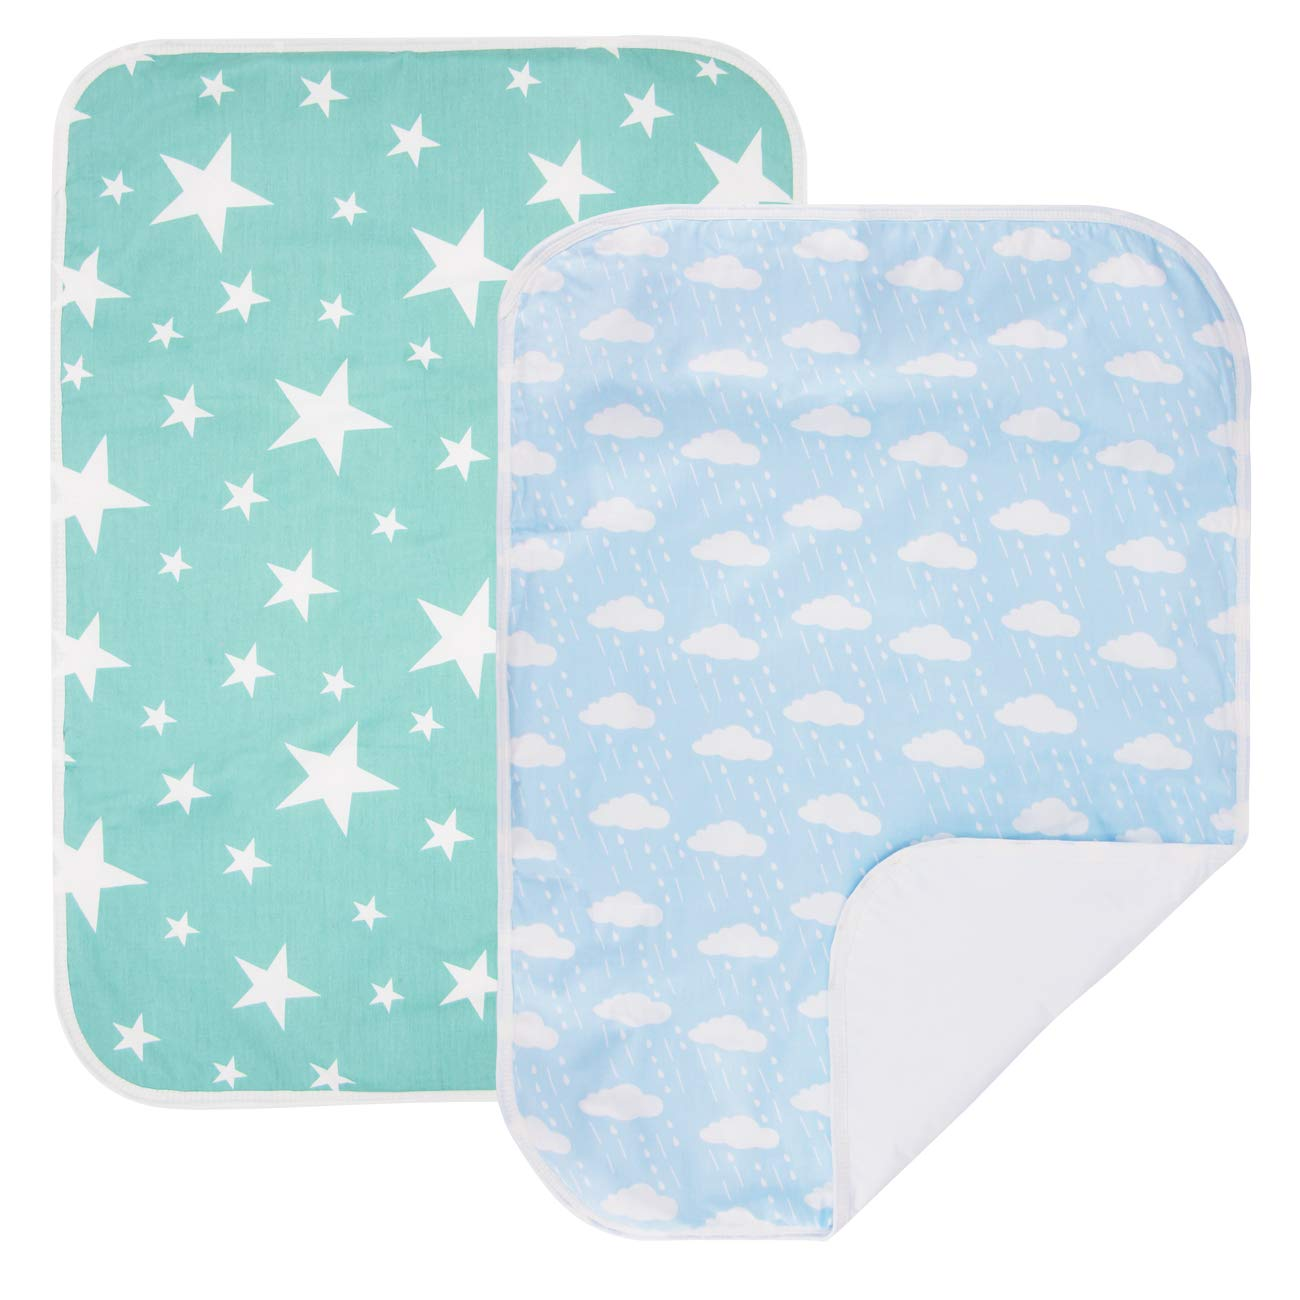 PEKITAS 2 Pack Waterproof Diaper Changing Pads Travel Friendly Super Soft Fabric Size 19.5 x 27.5 inches (Medium,0-1 Year),Sky Blue Series